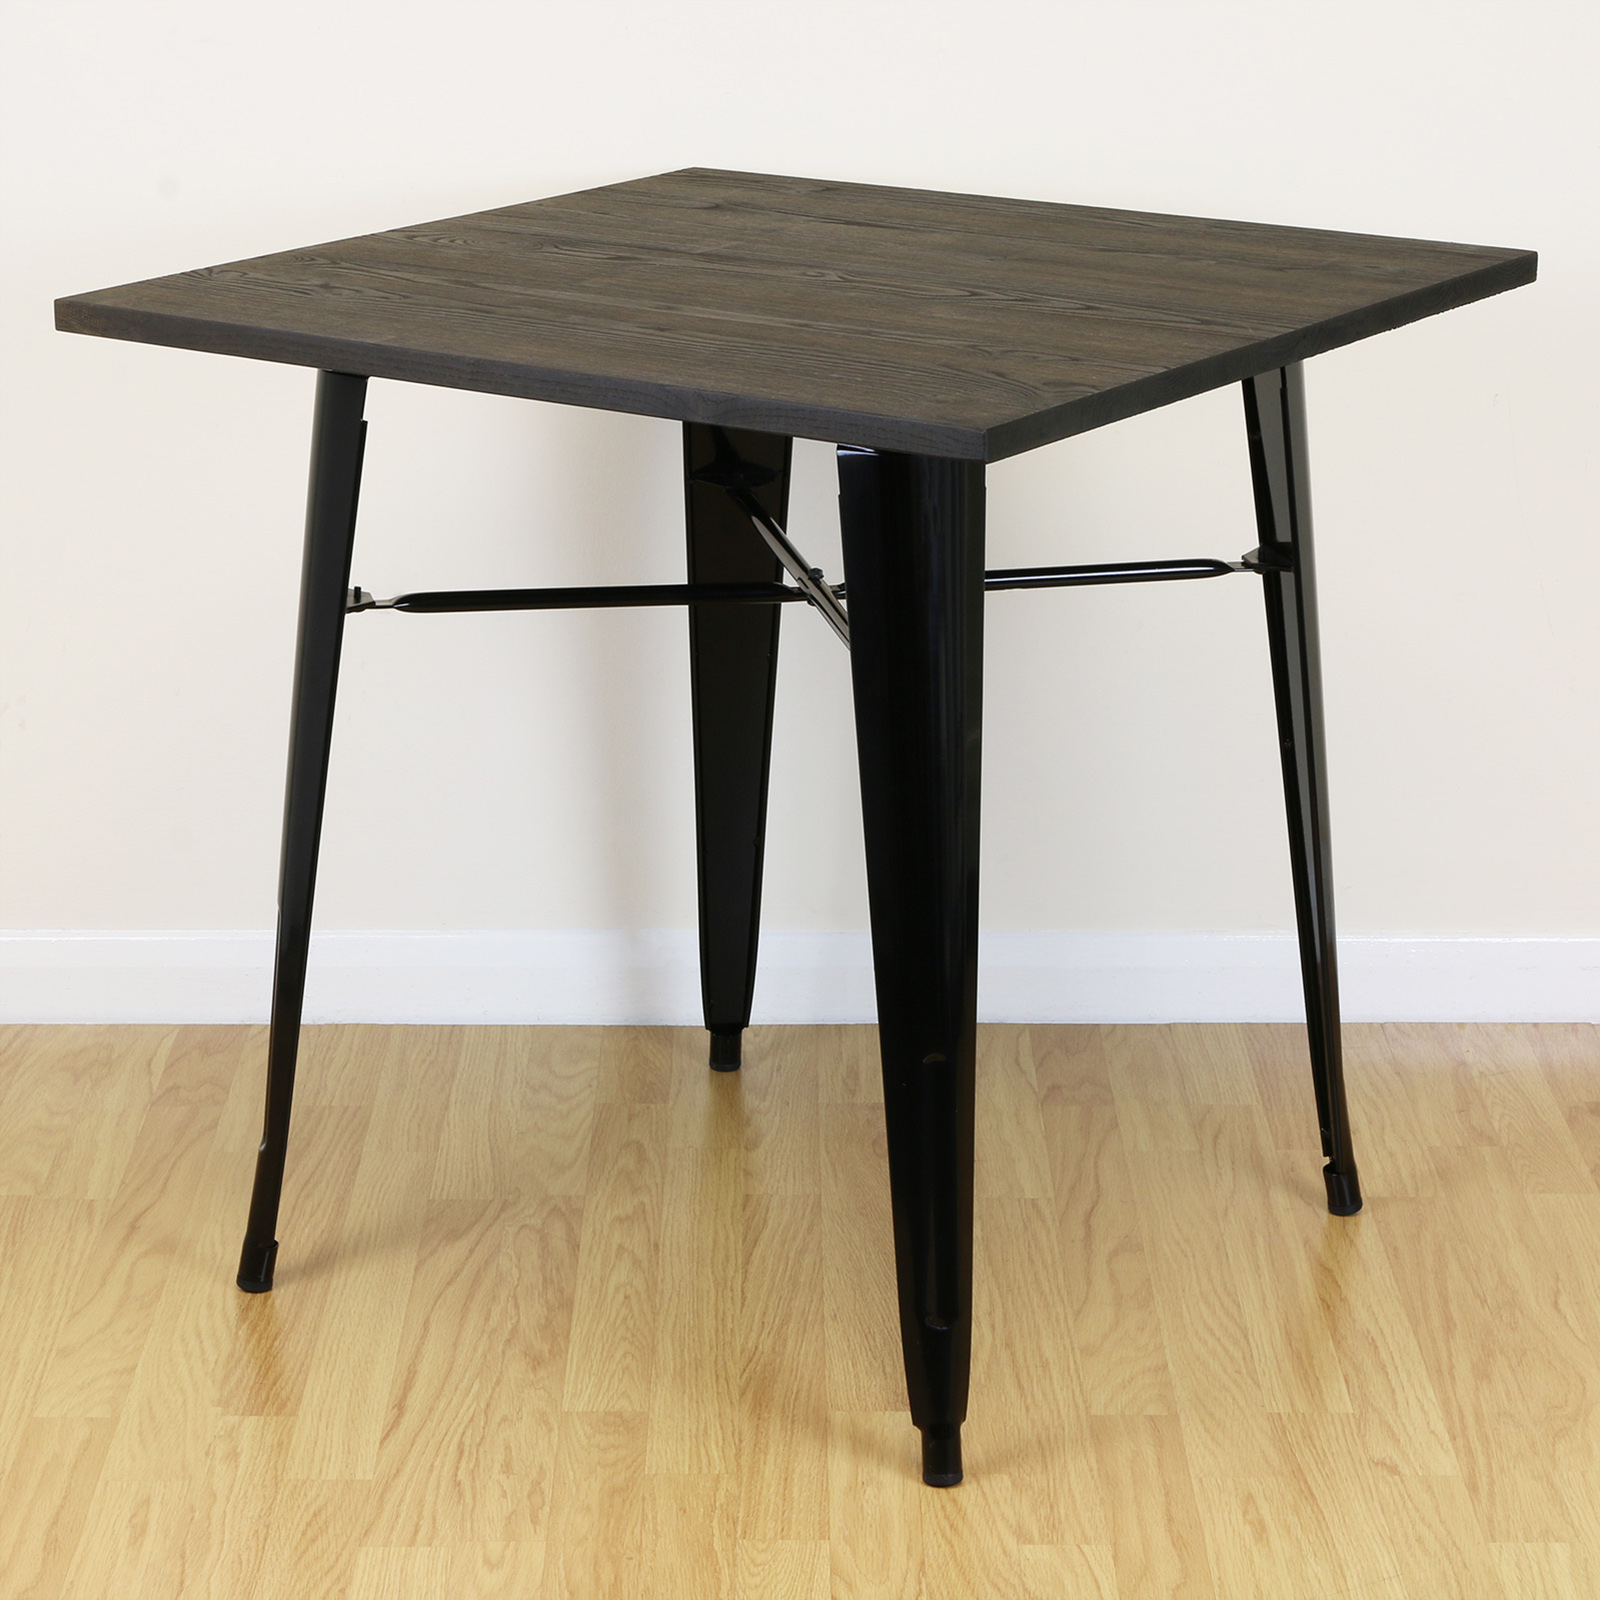 Black Square Kitchen Table: Square Wood & Black Kitchen/Dining/Cafe Home Table 2/4